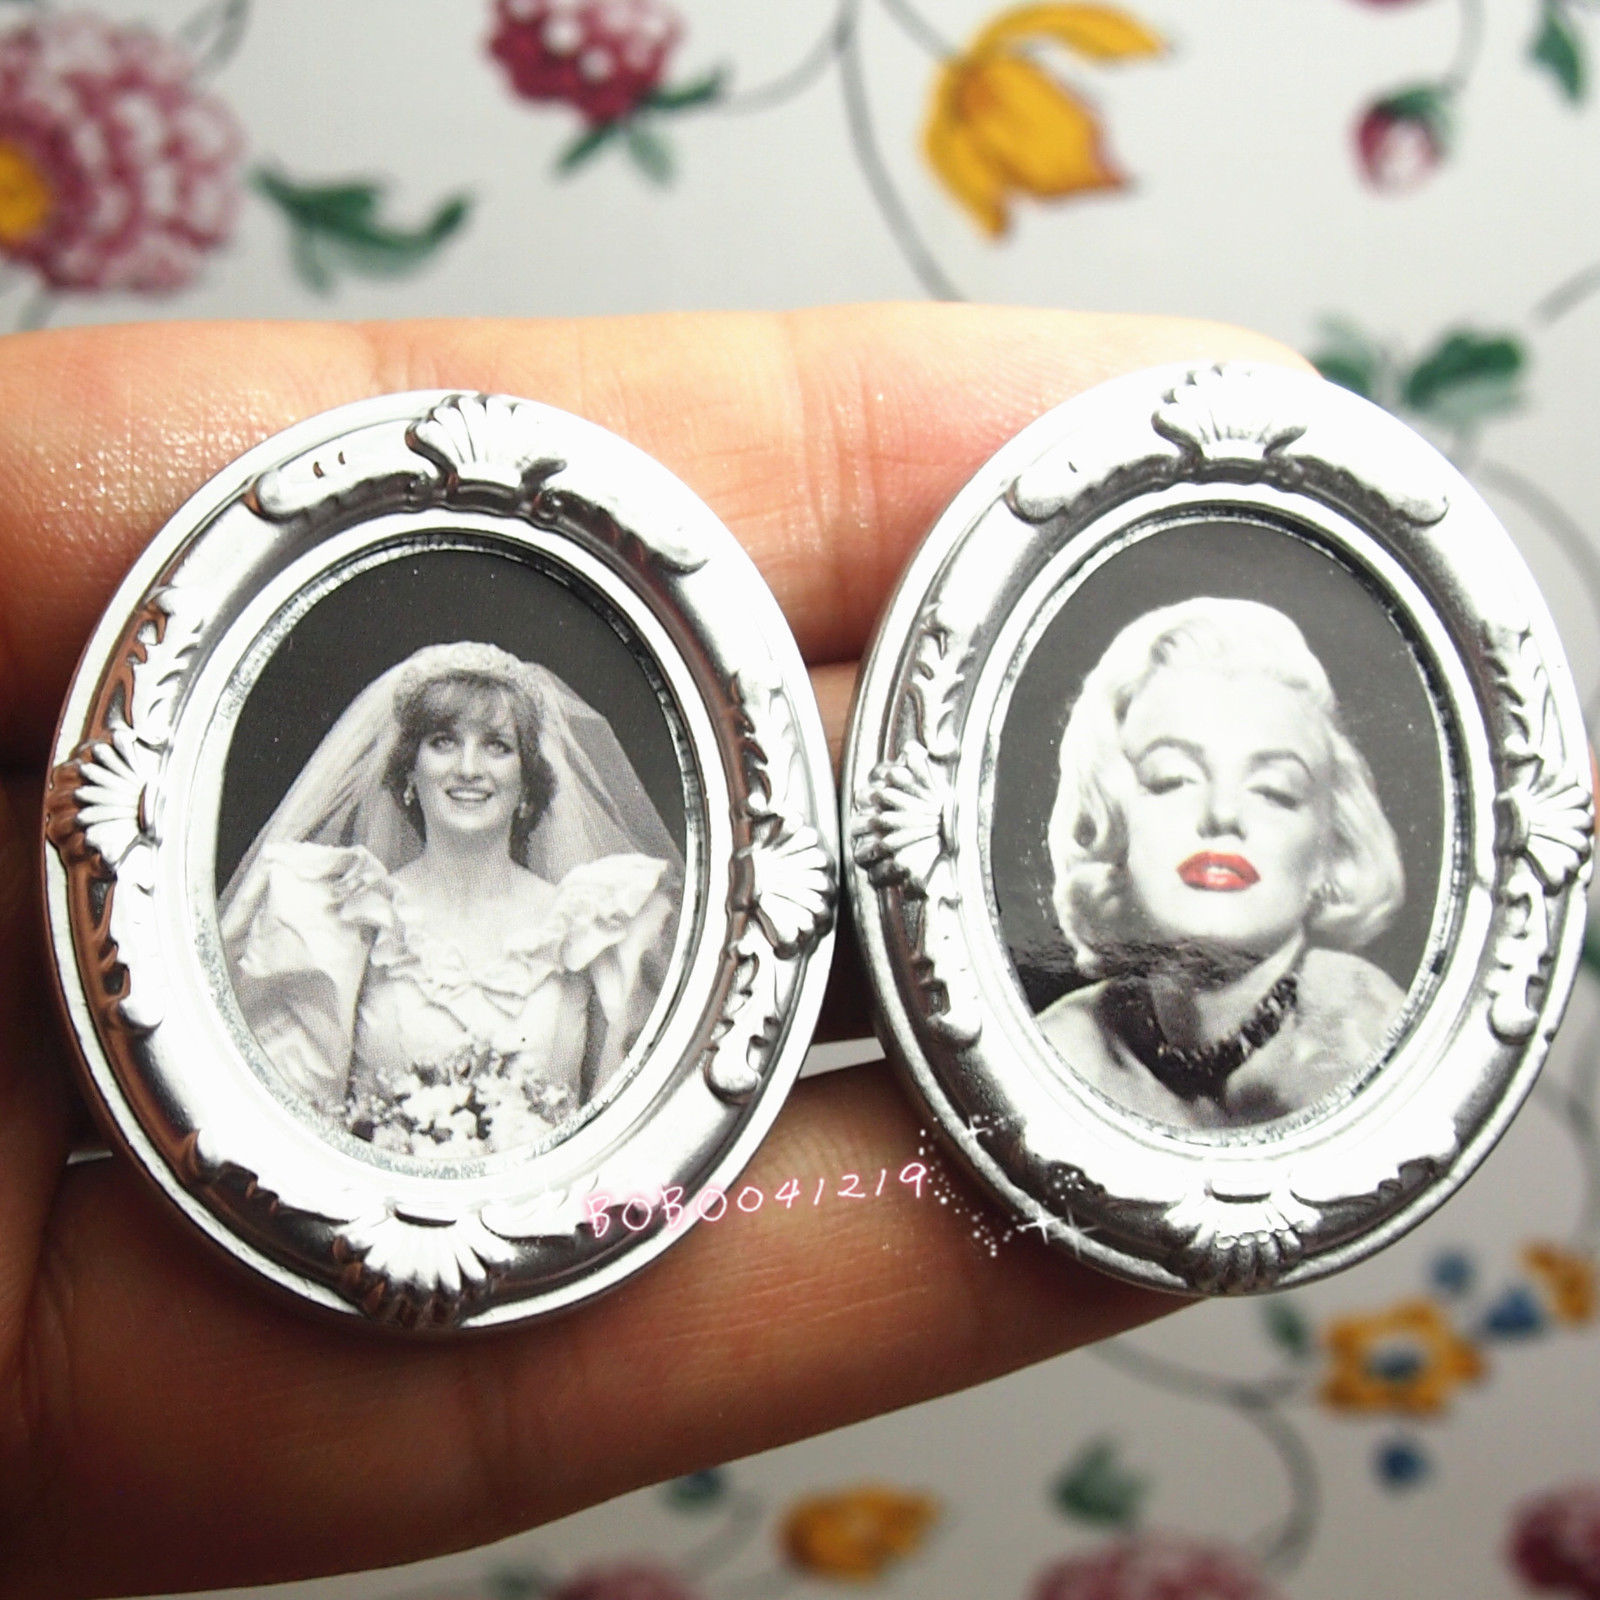 Doll Houses Dollhouse Miniature 1:12 Toy Living Room 2 Silver Oval Frames Length 4cm Em9s Refreshing And Enriching The Saliva